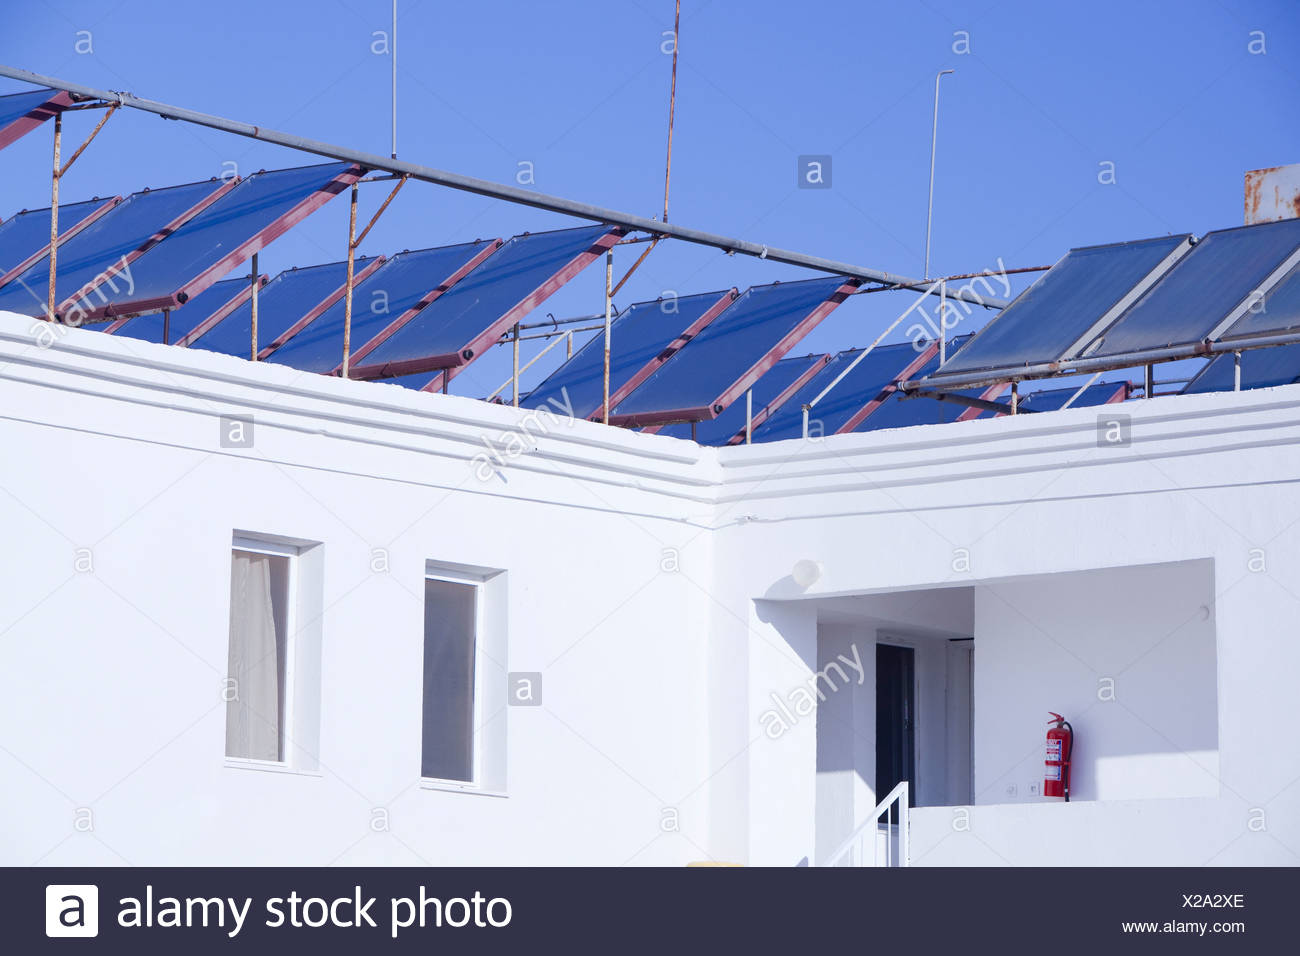 Solar water heating panels on the roof of a launderette in Teos, Western Turkey. - Stock Image